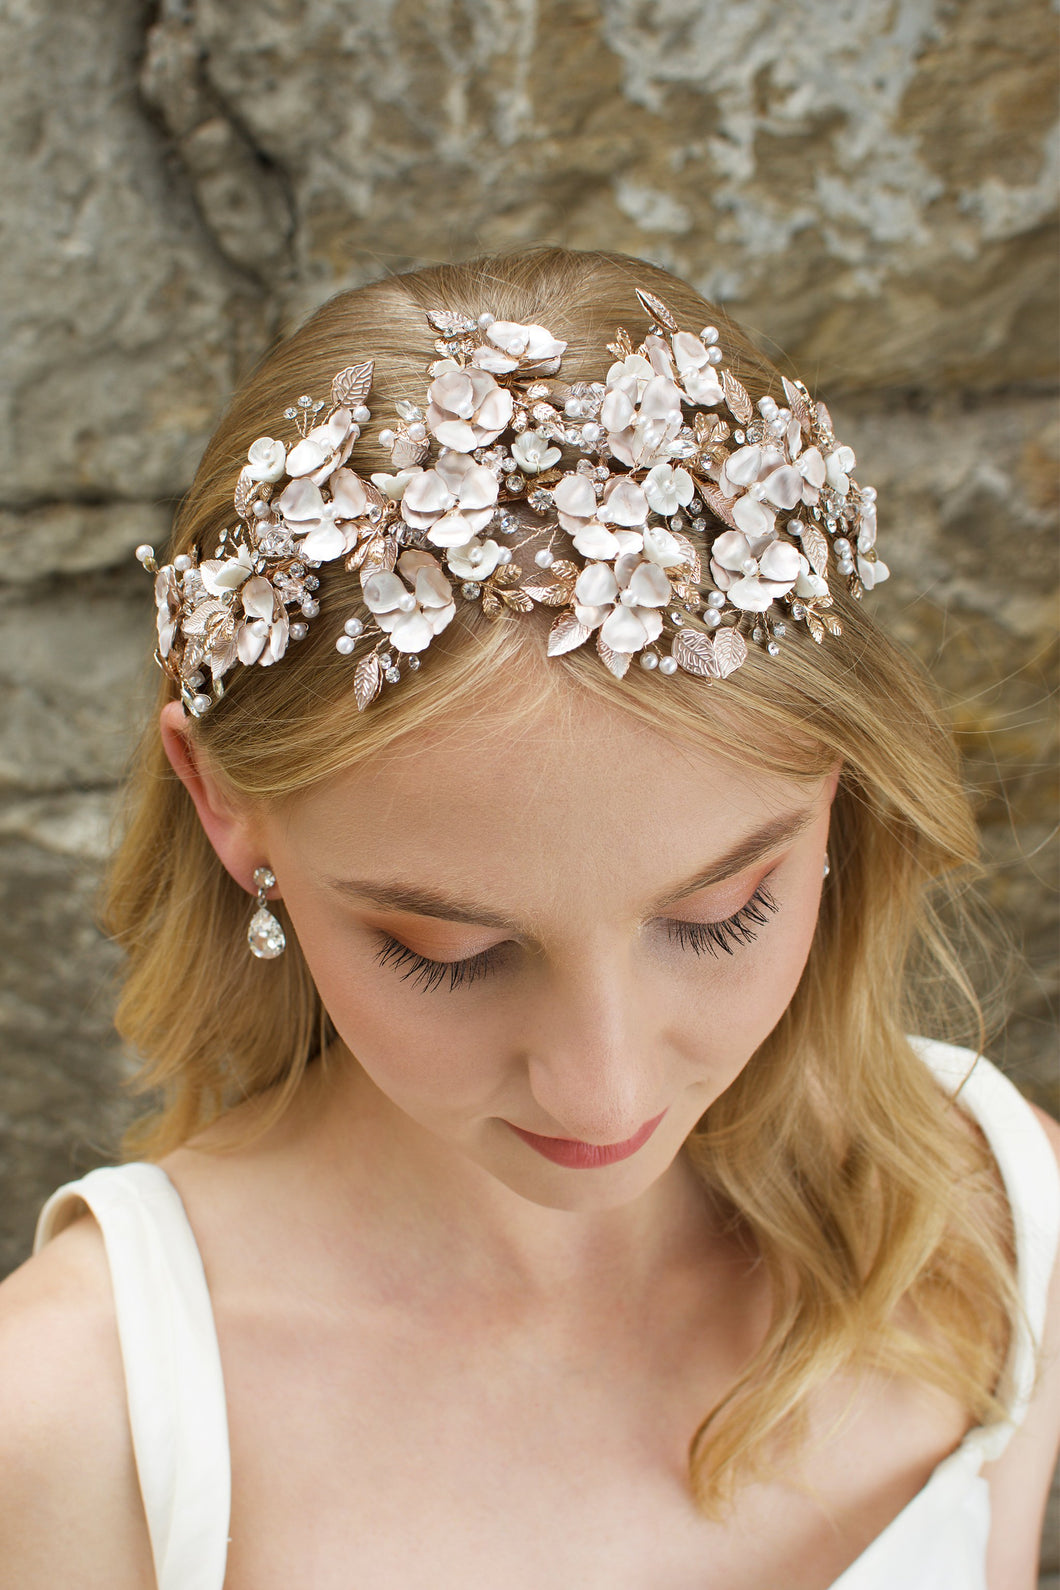 Blonde  Haired model wears a wide headband of flowers with the background of a stone wall